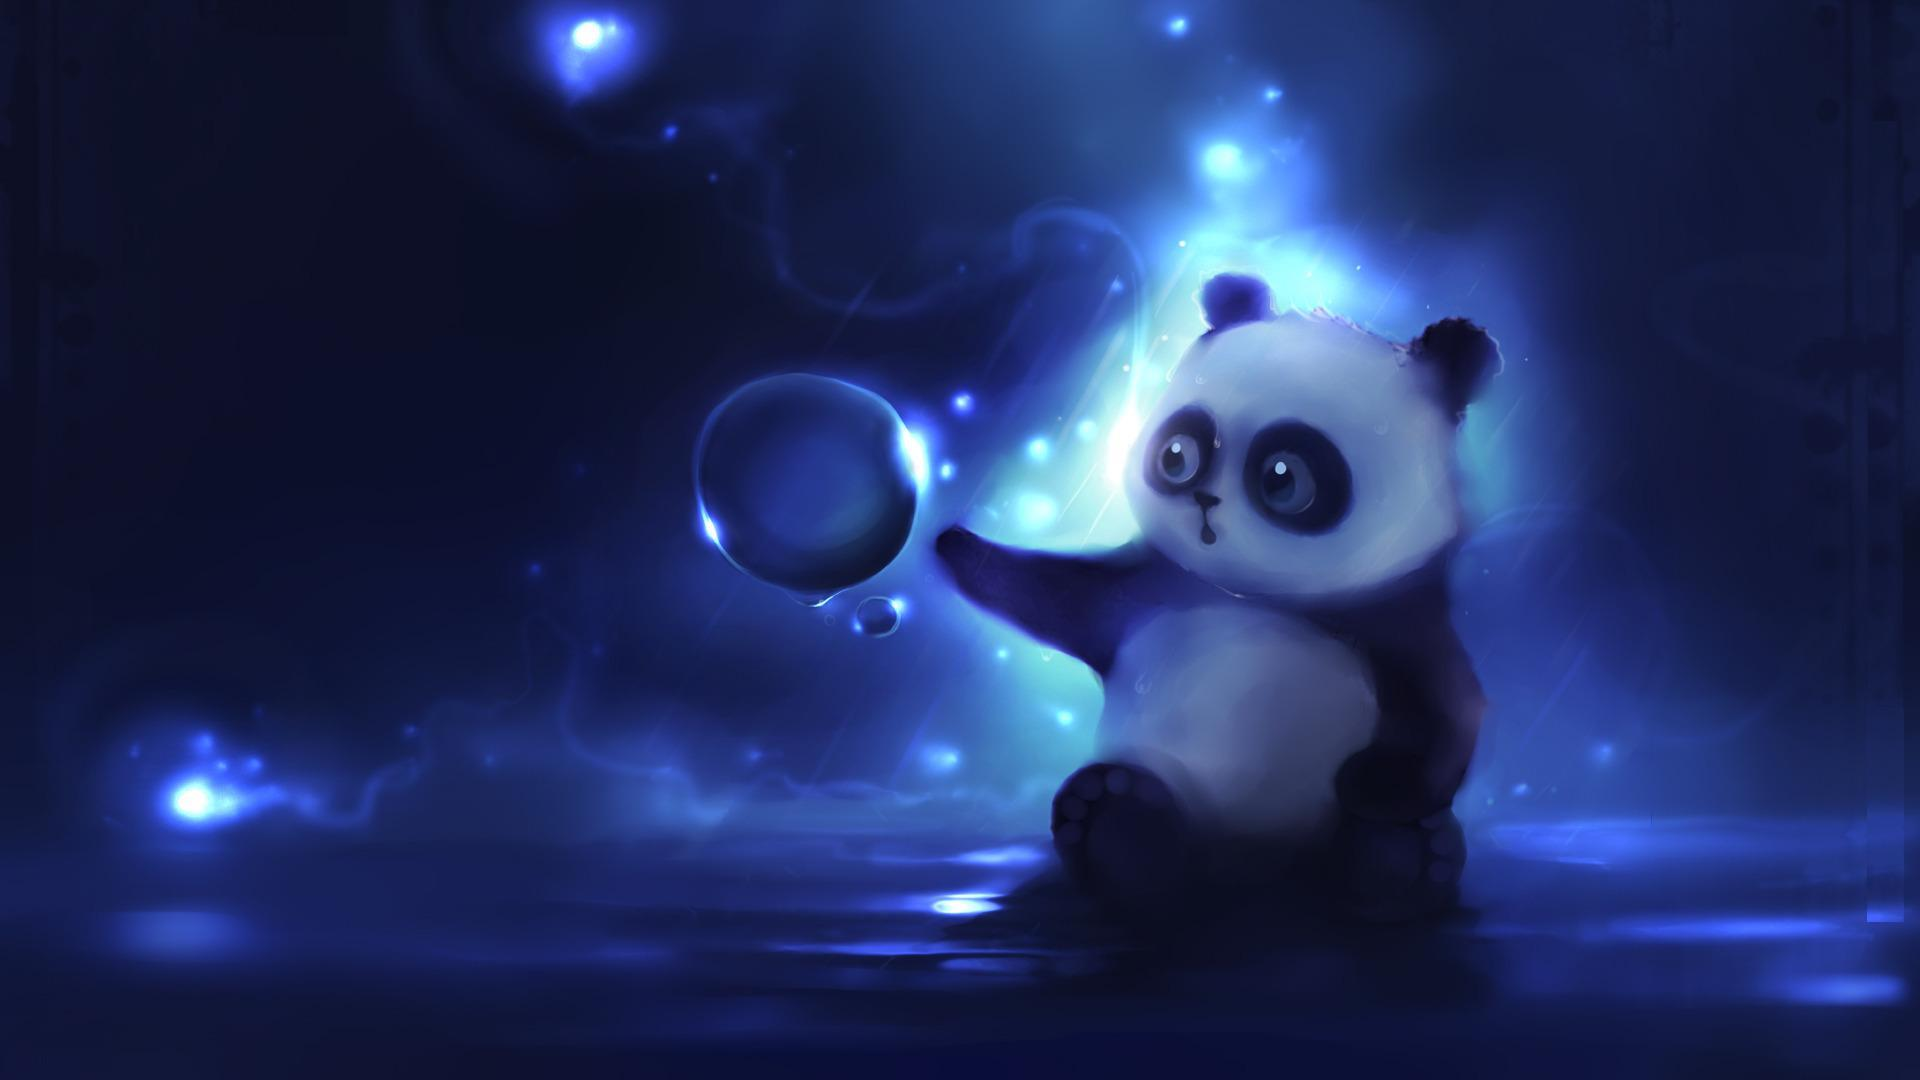 wallpapers cute animated cartoon characters wallpapers download free ...